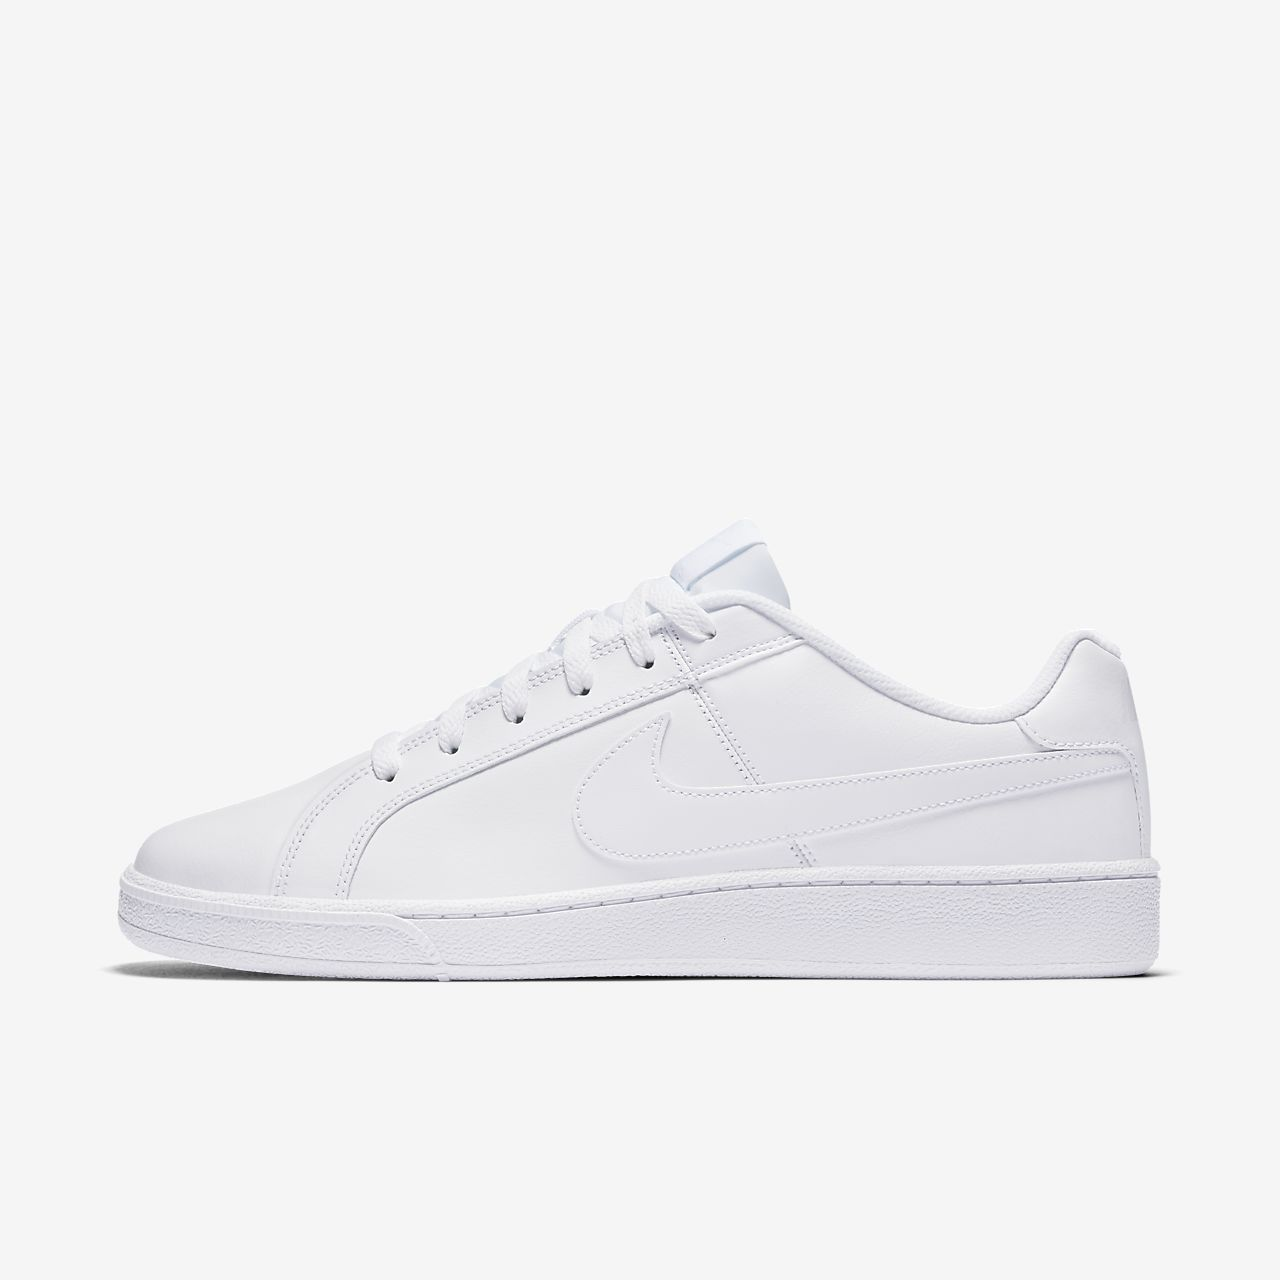 6da438bfde0 Low Resolution Nike Court Royale Herenschoen Nike Court Royale Herenschoen